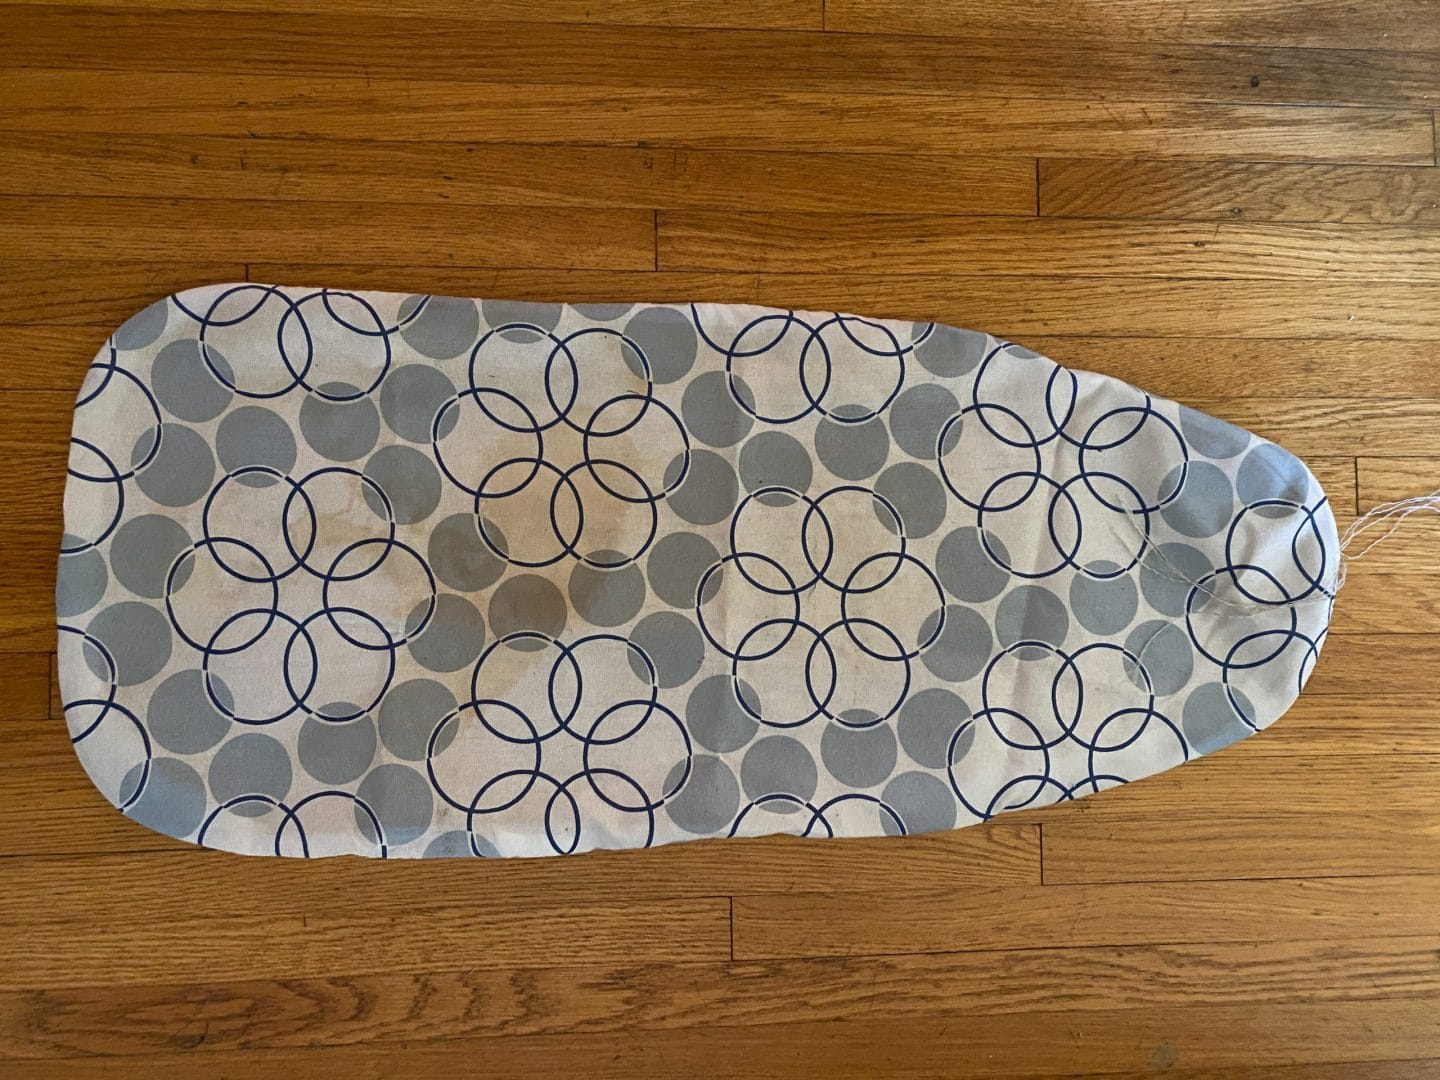 Image of an old, stained ironing board cover